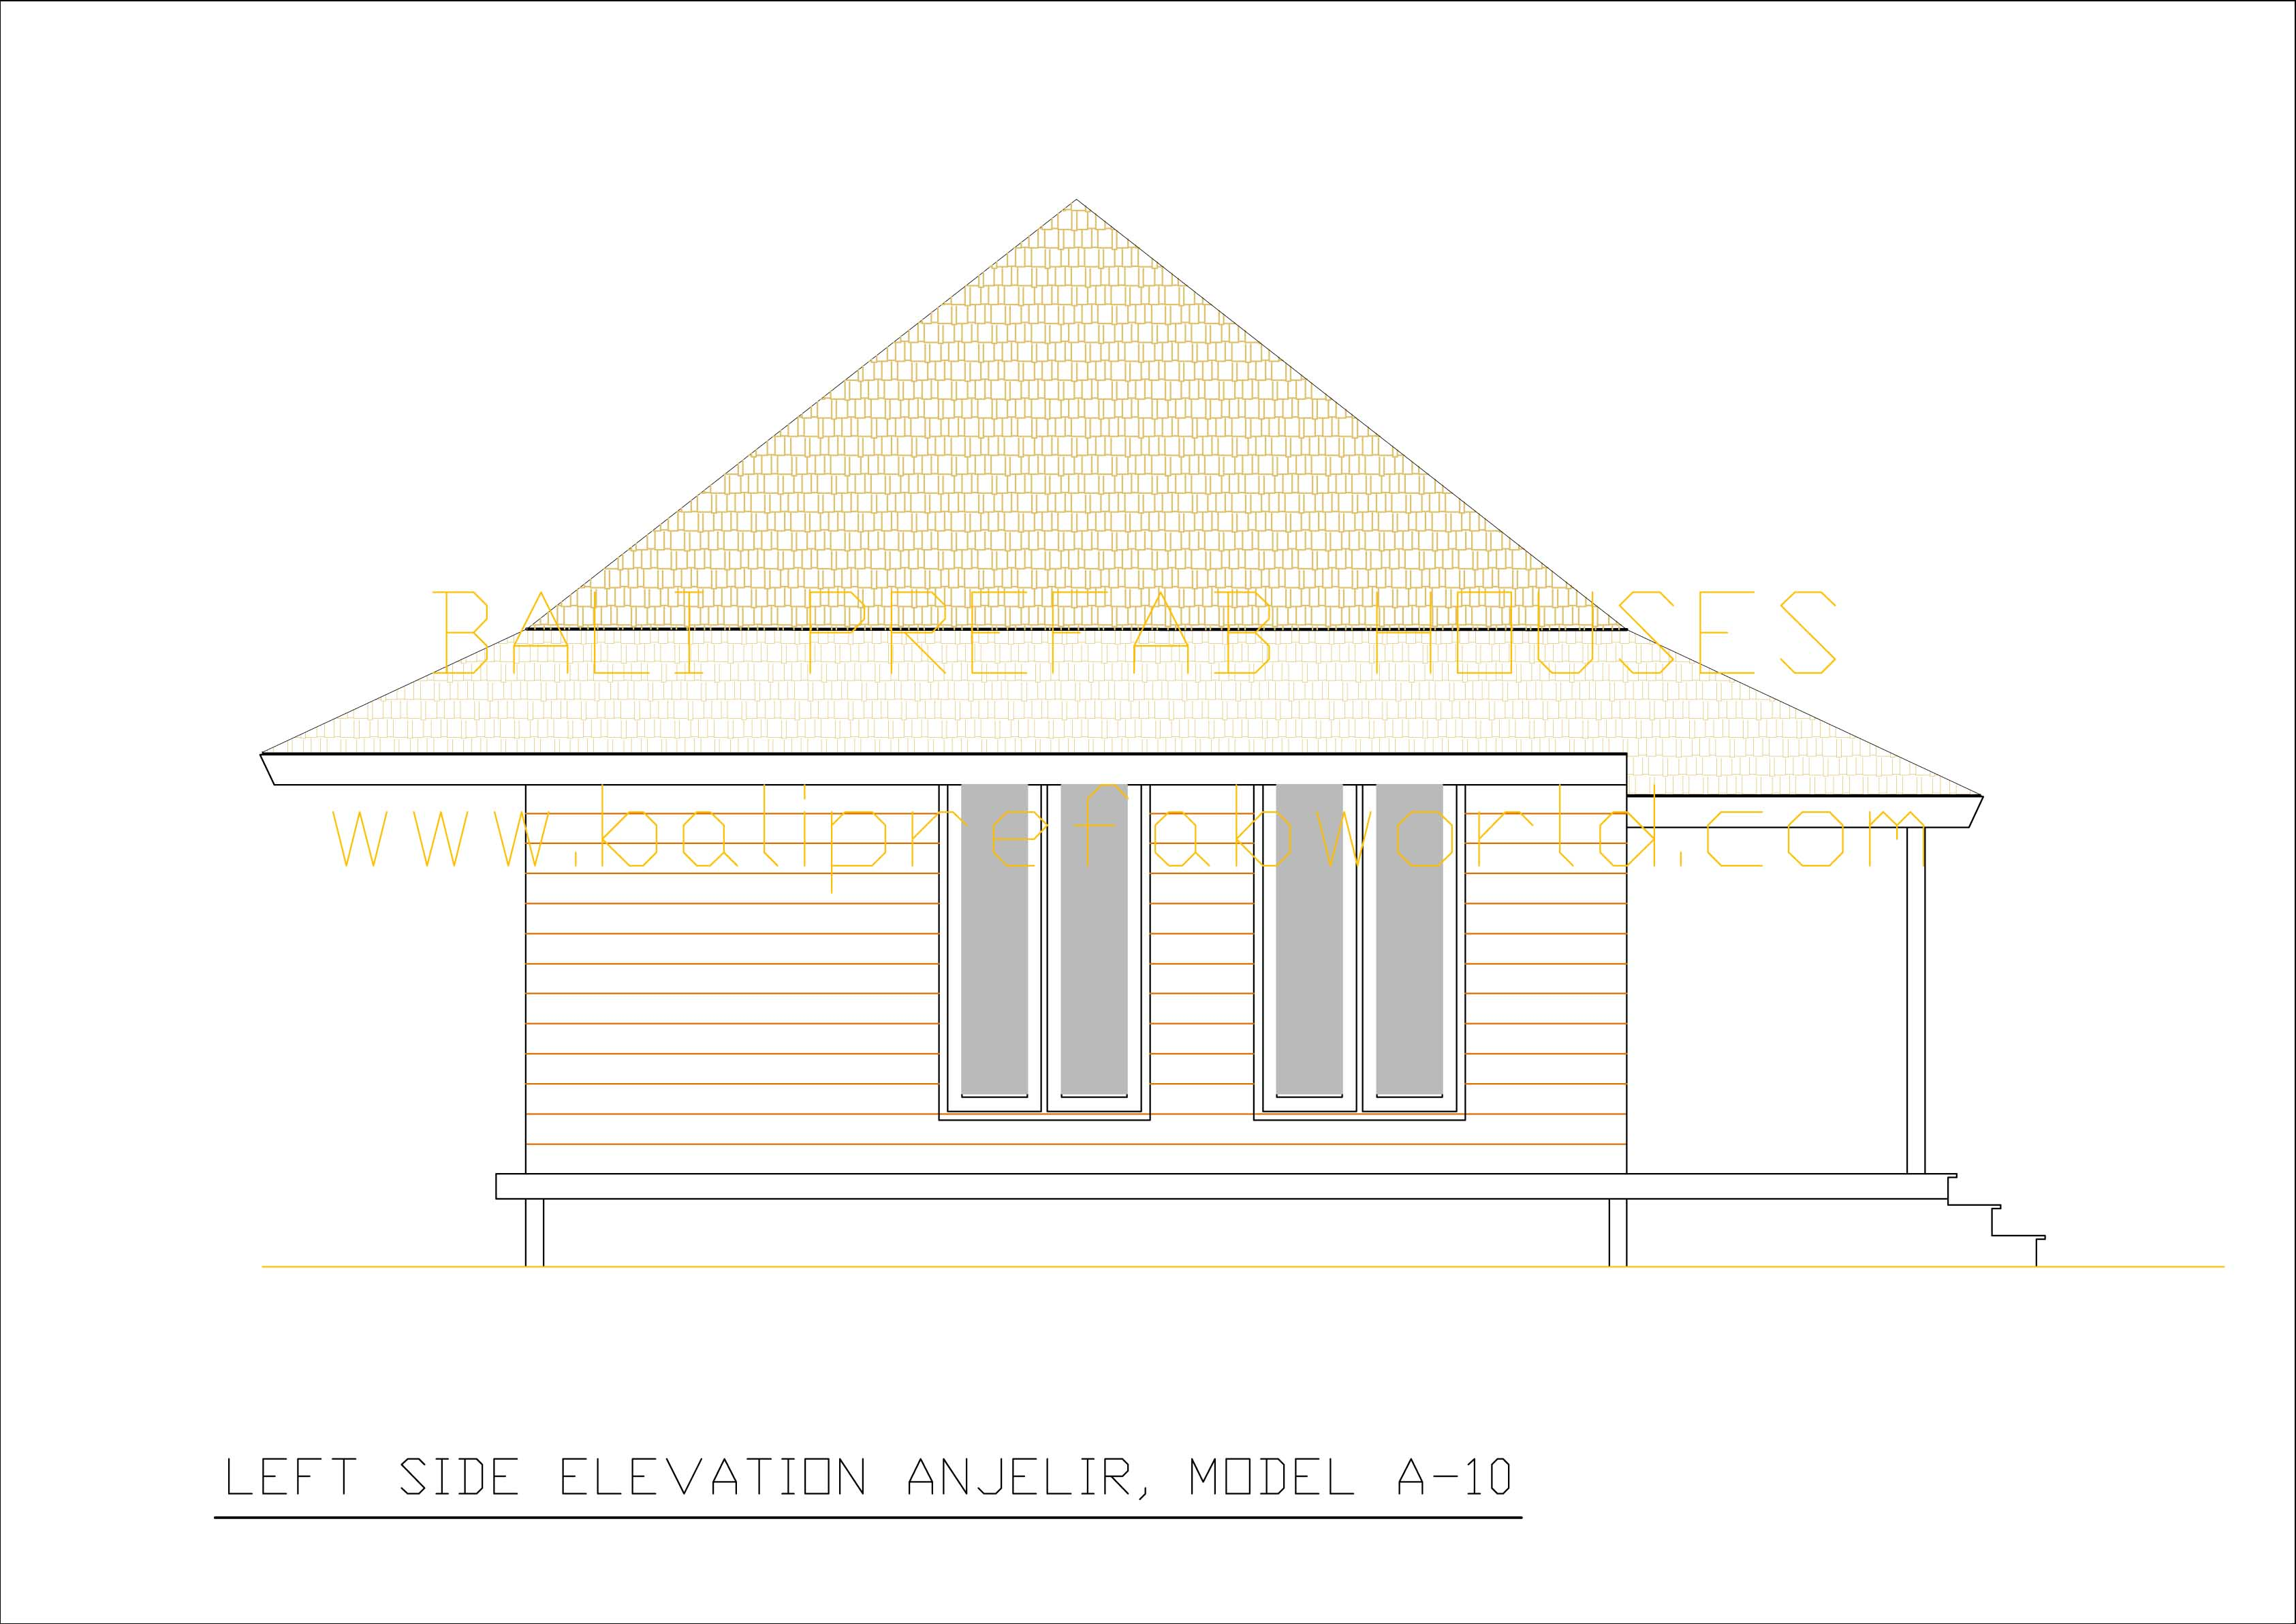 Anjelir left side elevation